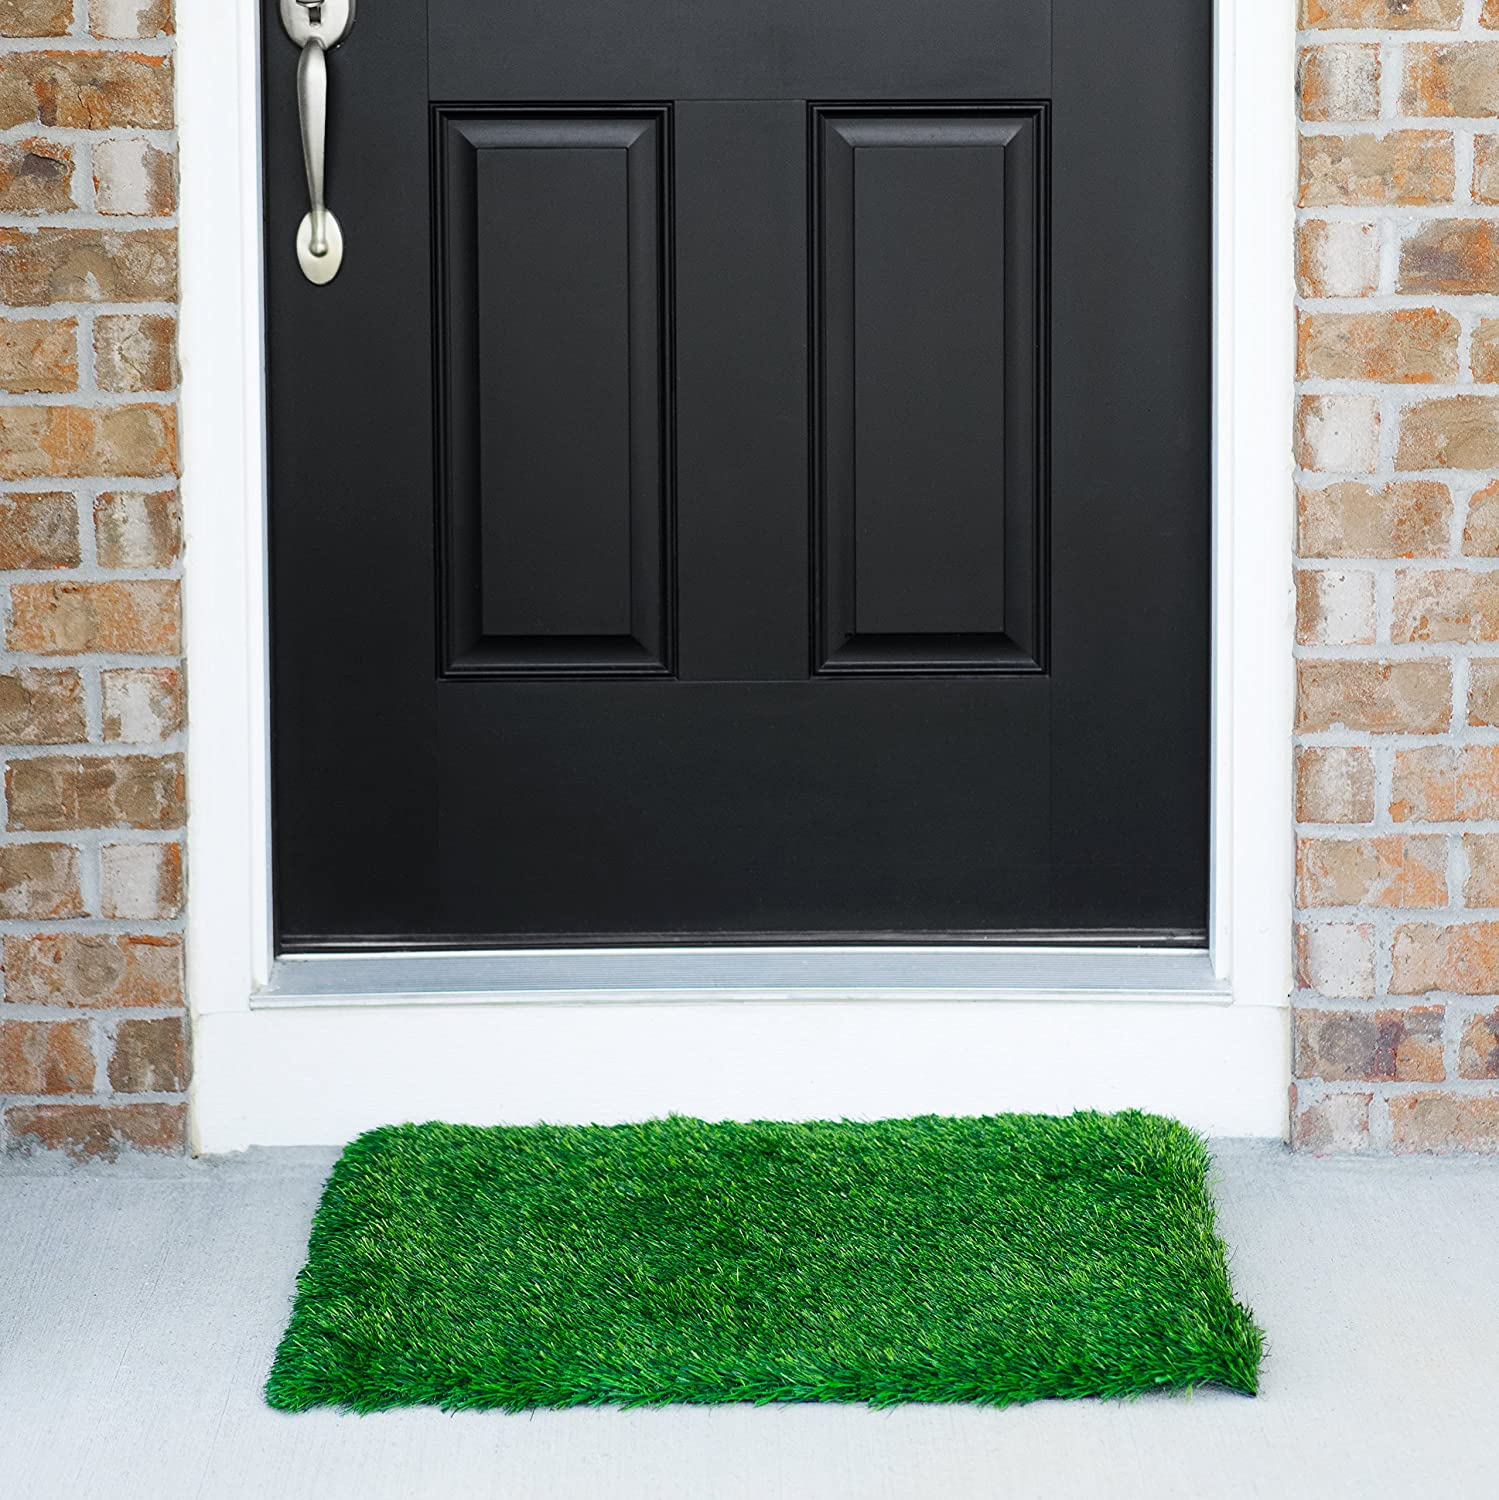 Grass Door Mat With SmartDrain Technology - Perfect For Your Garden Balcony & Porch (24X30 Inches)